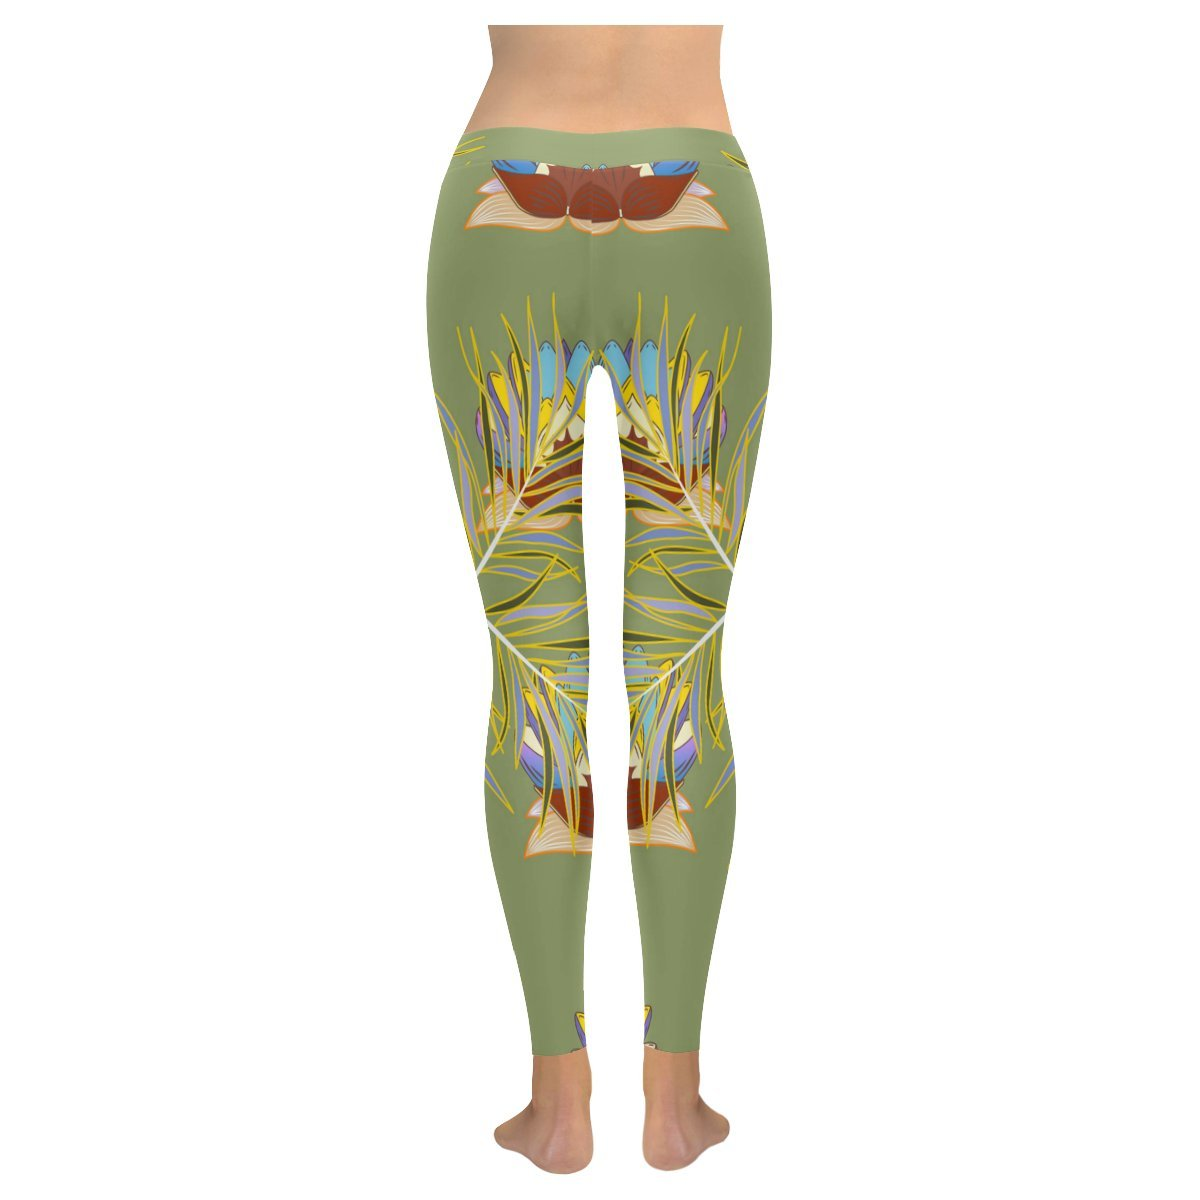 Custom Colorful Floral Texture Skinny Leggings Stretchy Capri Pants for Yoga Workout Gym,2XS-5XL